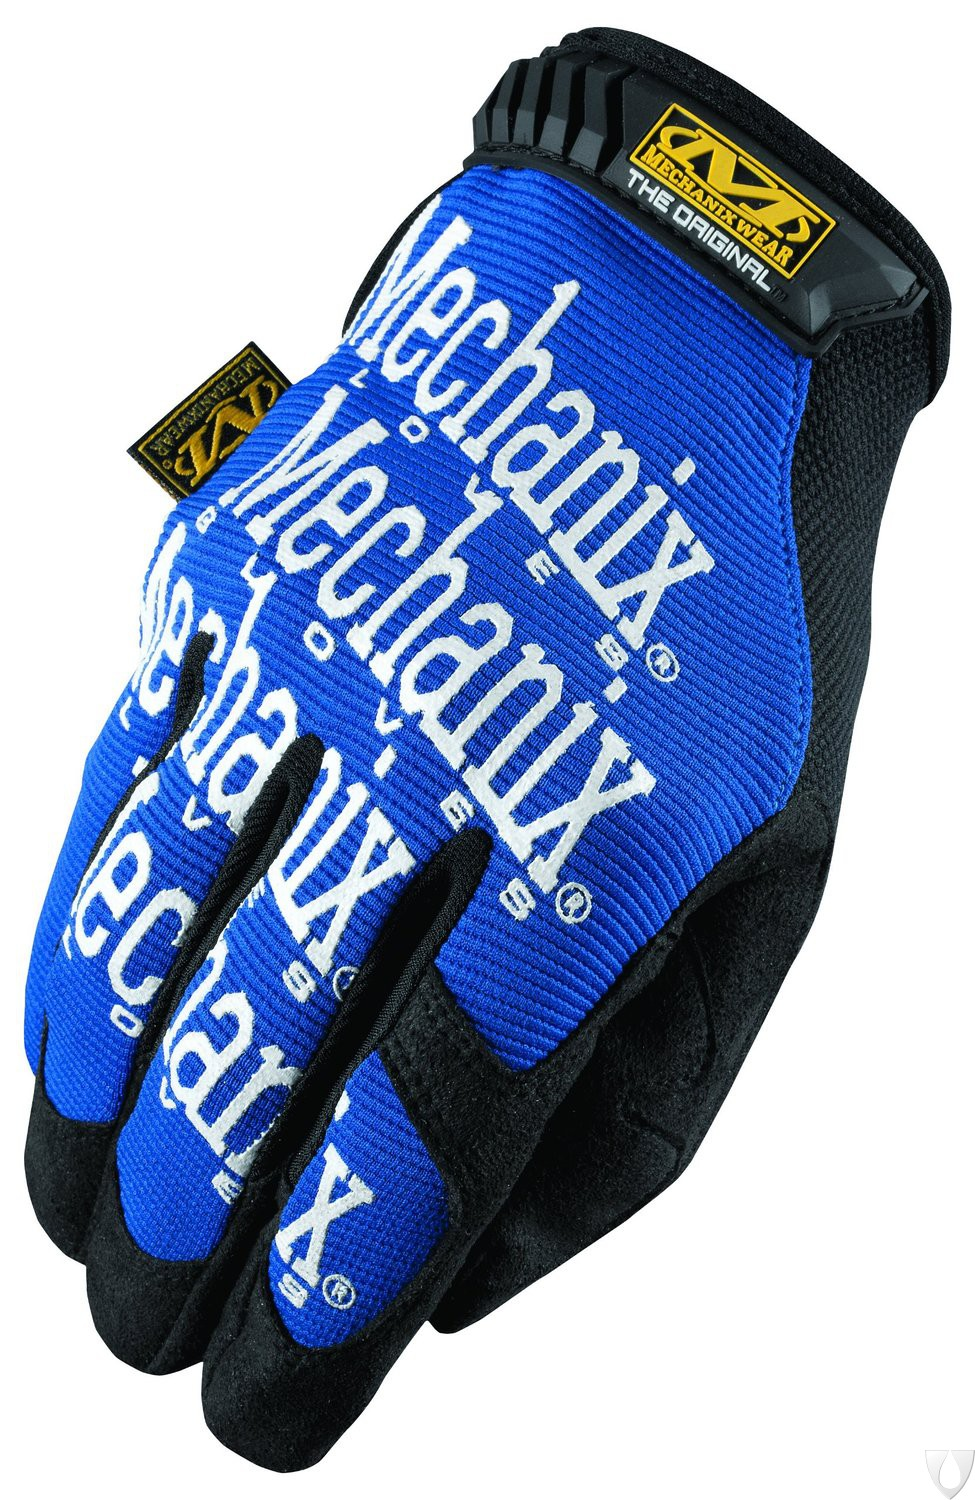 Mechanix Handschoen Original Blauw MG-03